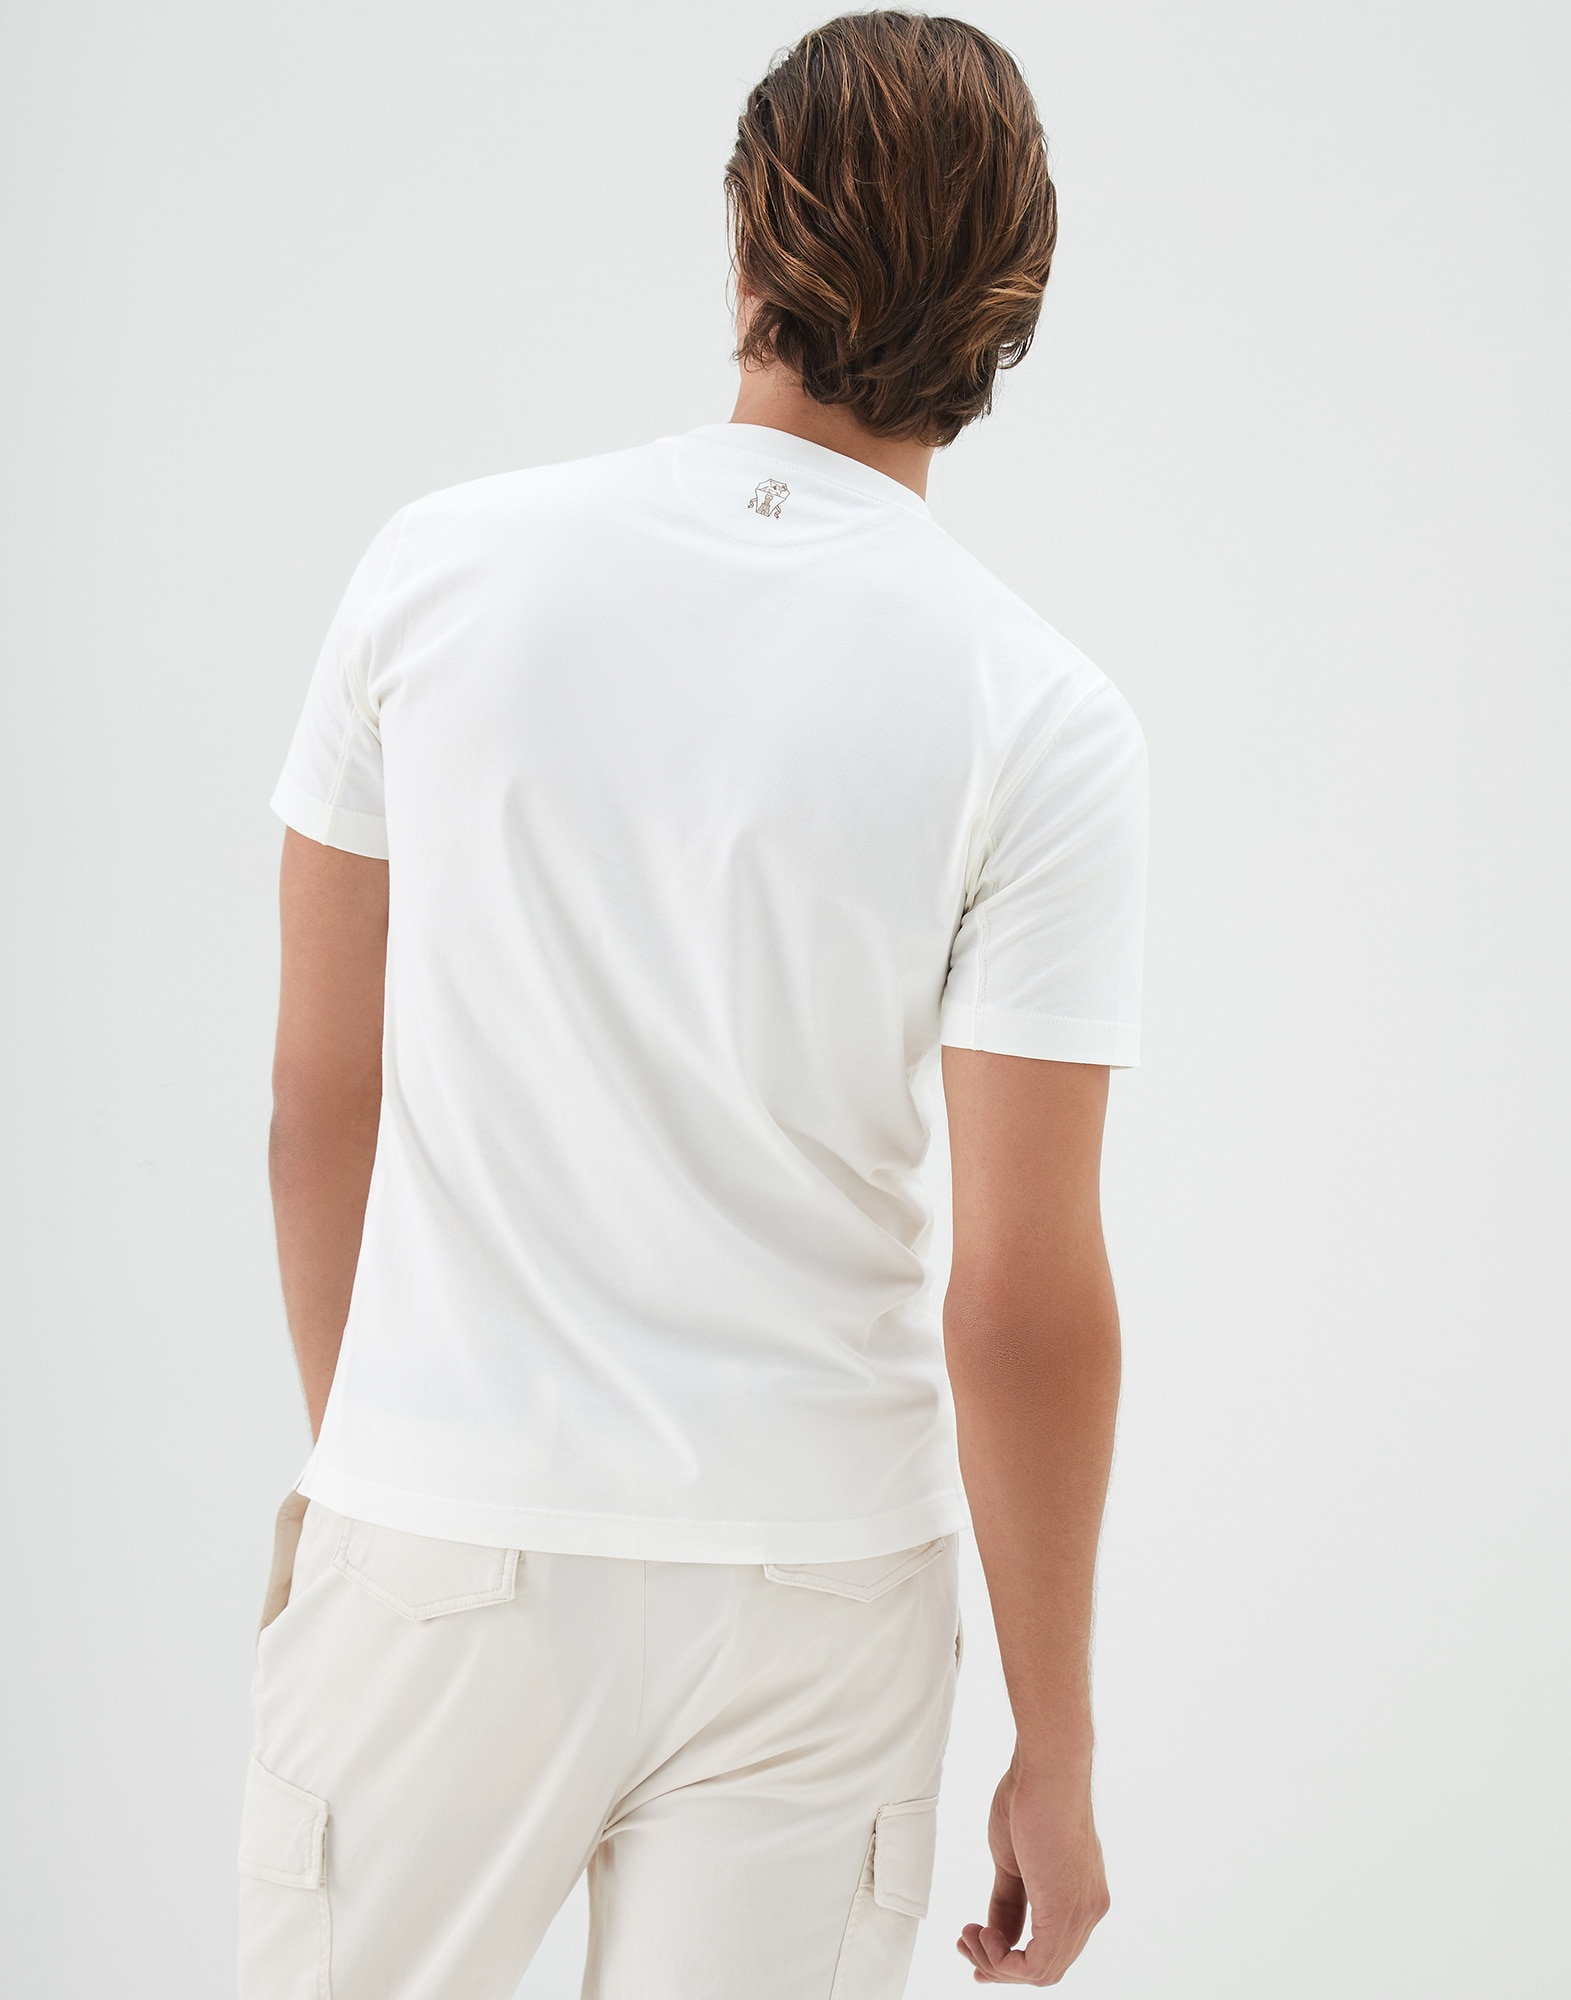 Short Sleeve T-Shirt Off-White Man 2 - Brunello Cucinelli